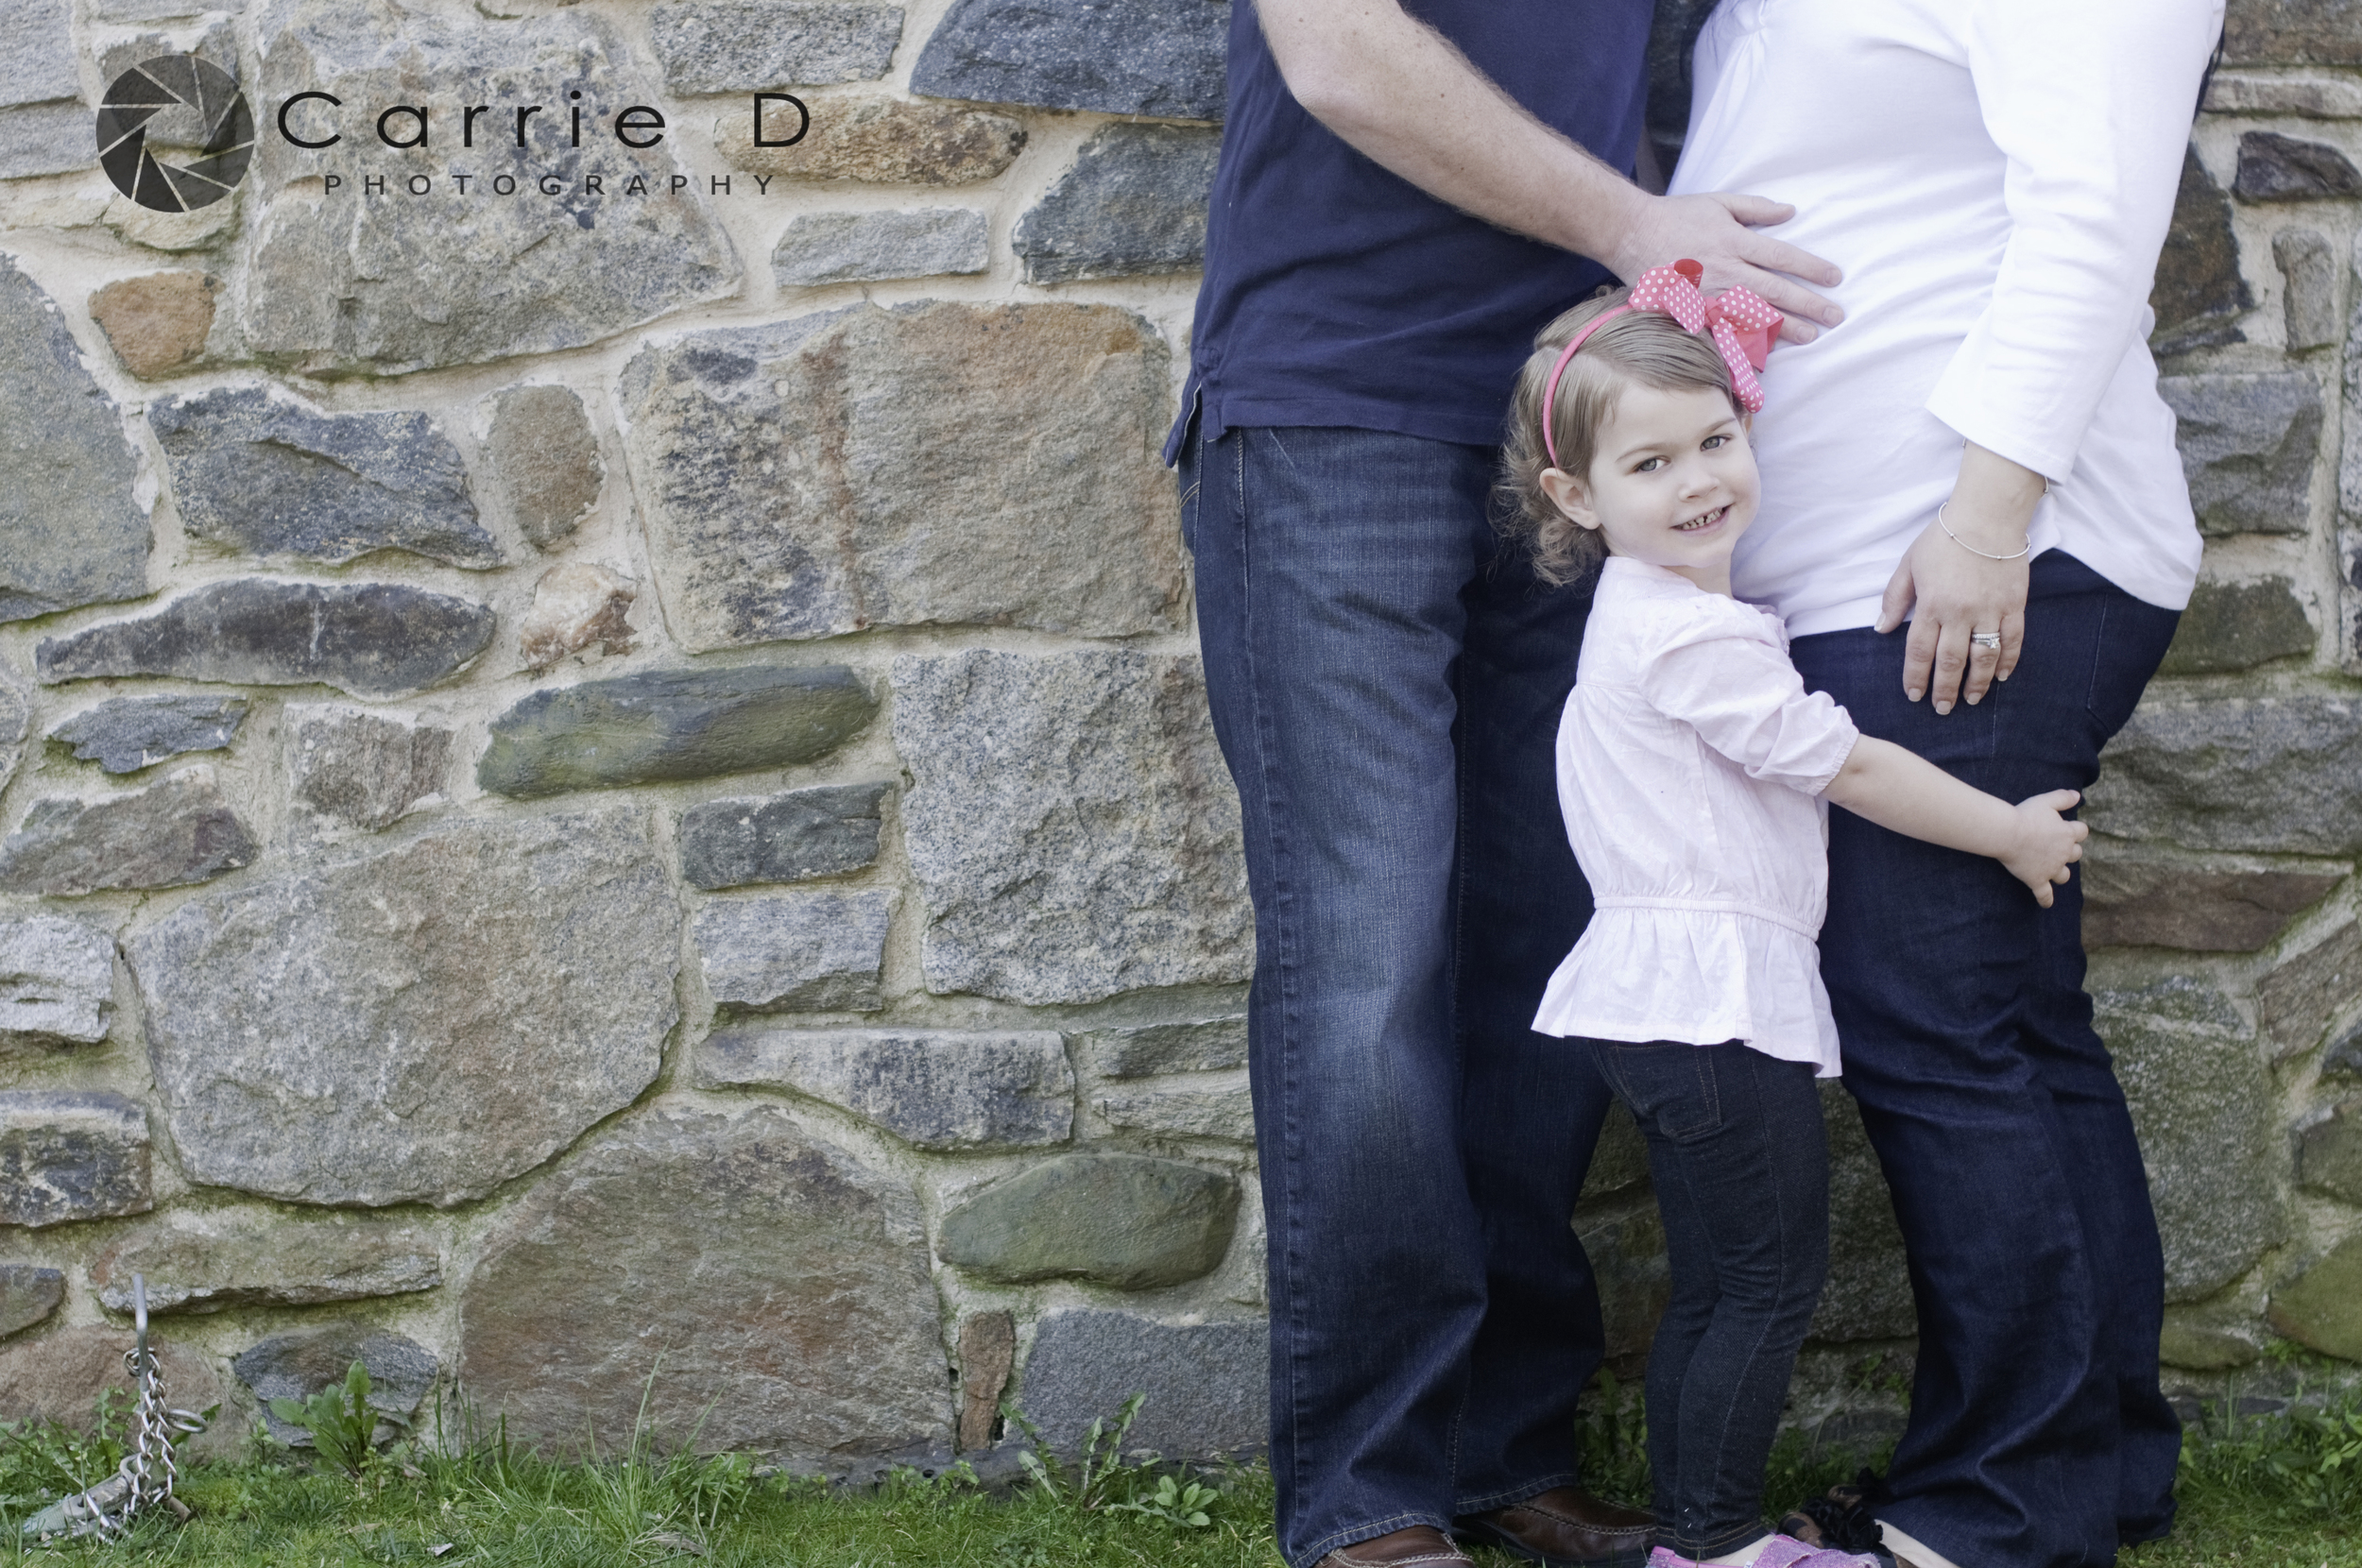 Harford County Maternity Photographer - Maternity Photography - Natural Light Maternity Photographer - Harford County Maryland Maternity Photographer - Harford County Family PHotographer - Jerusalem Mill Maternity Photography - Big Sister - Harford County Natural Light Maternity Photographer - Maternity Poses